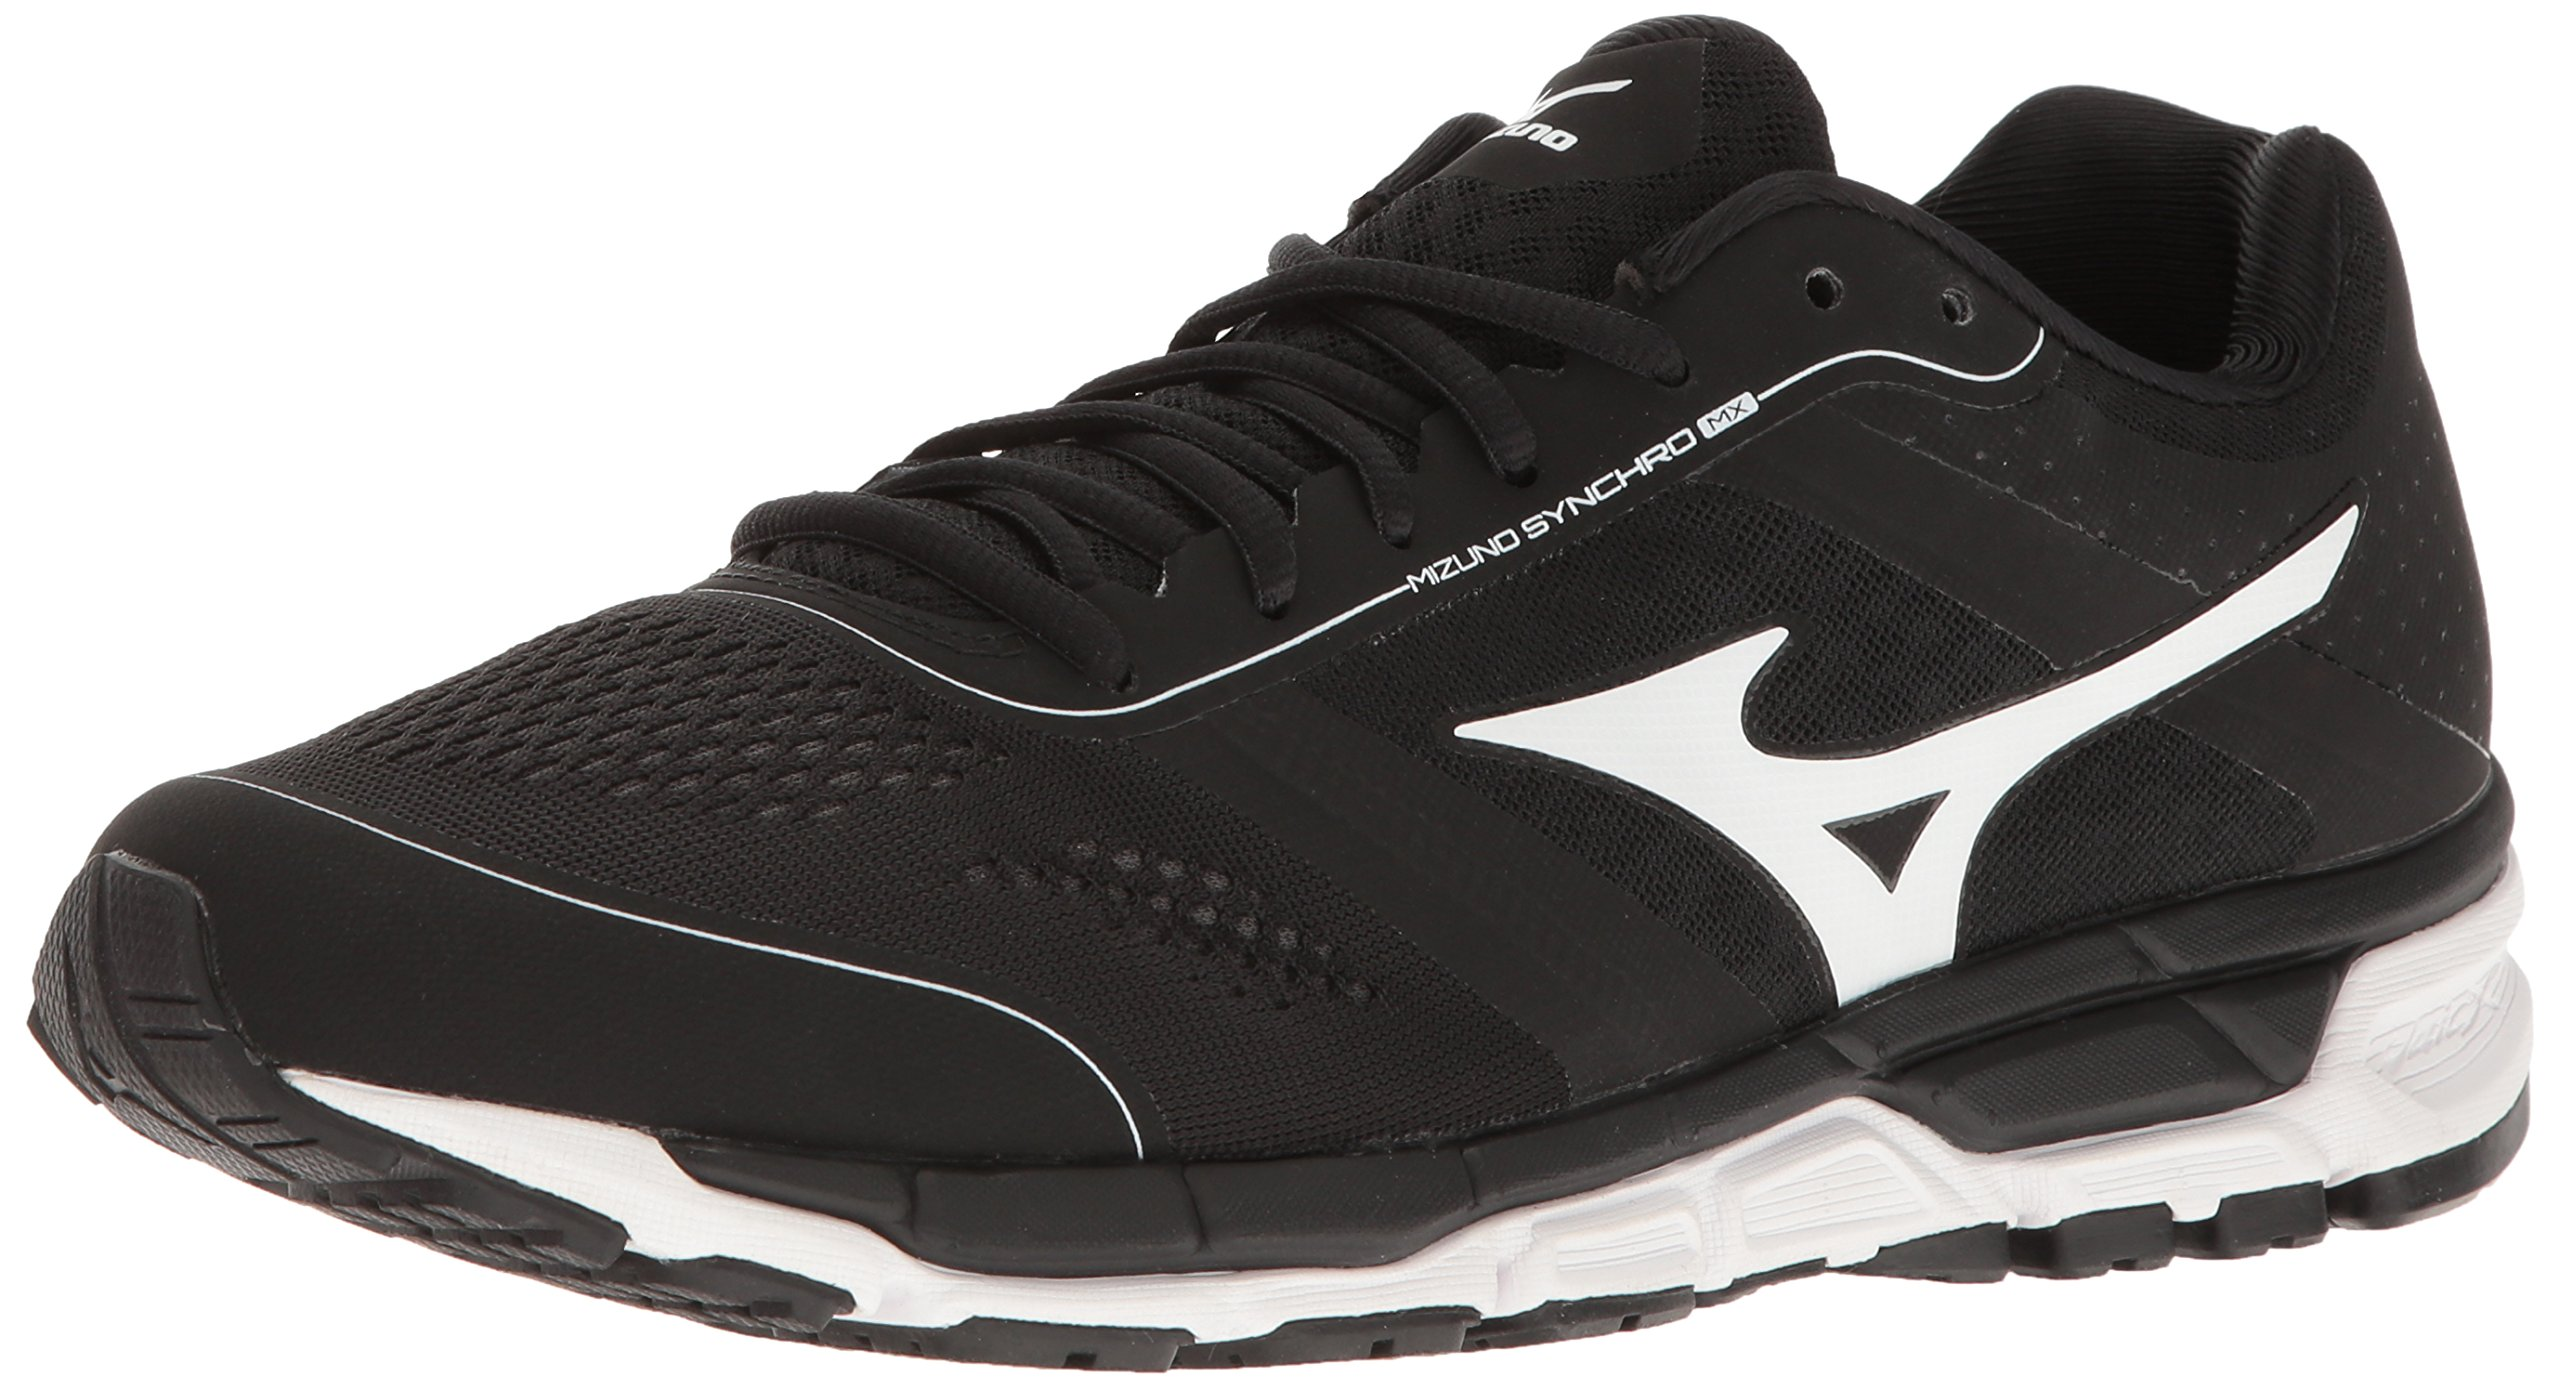 Mizuno Men's Synchro Mx Baseball Shoe, Black/White, 13 D US